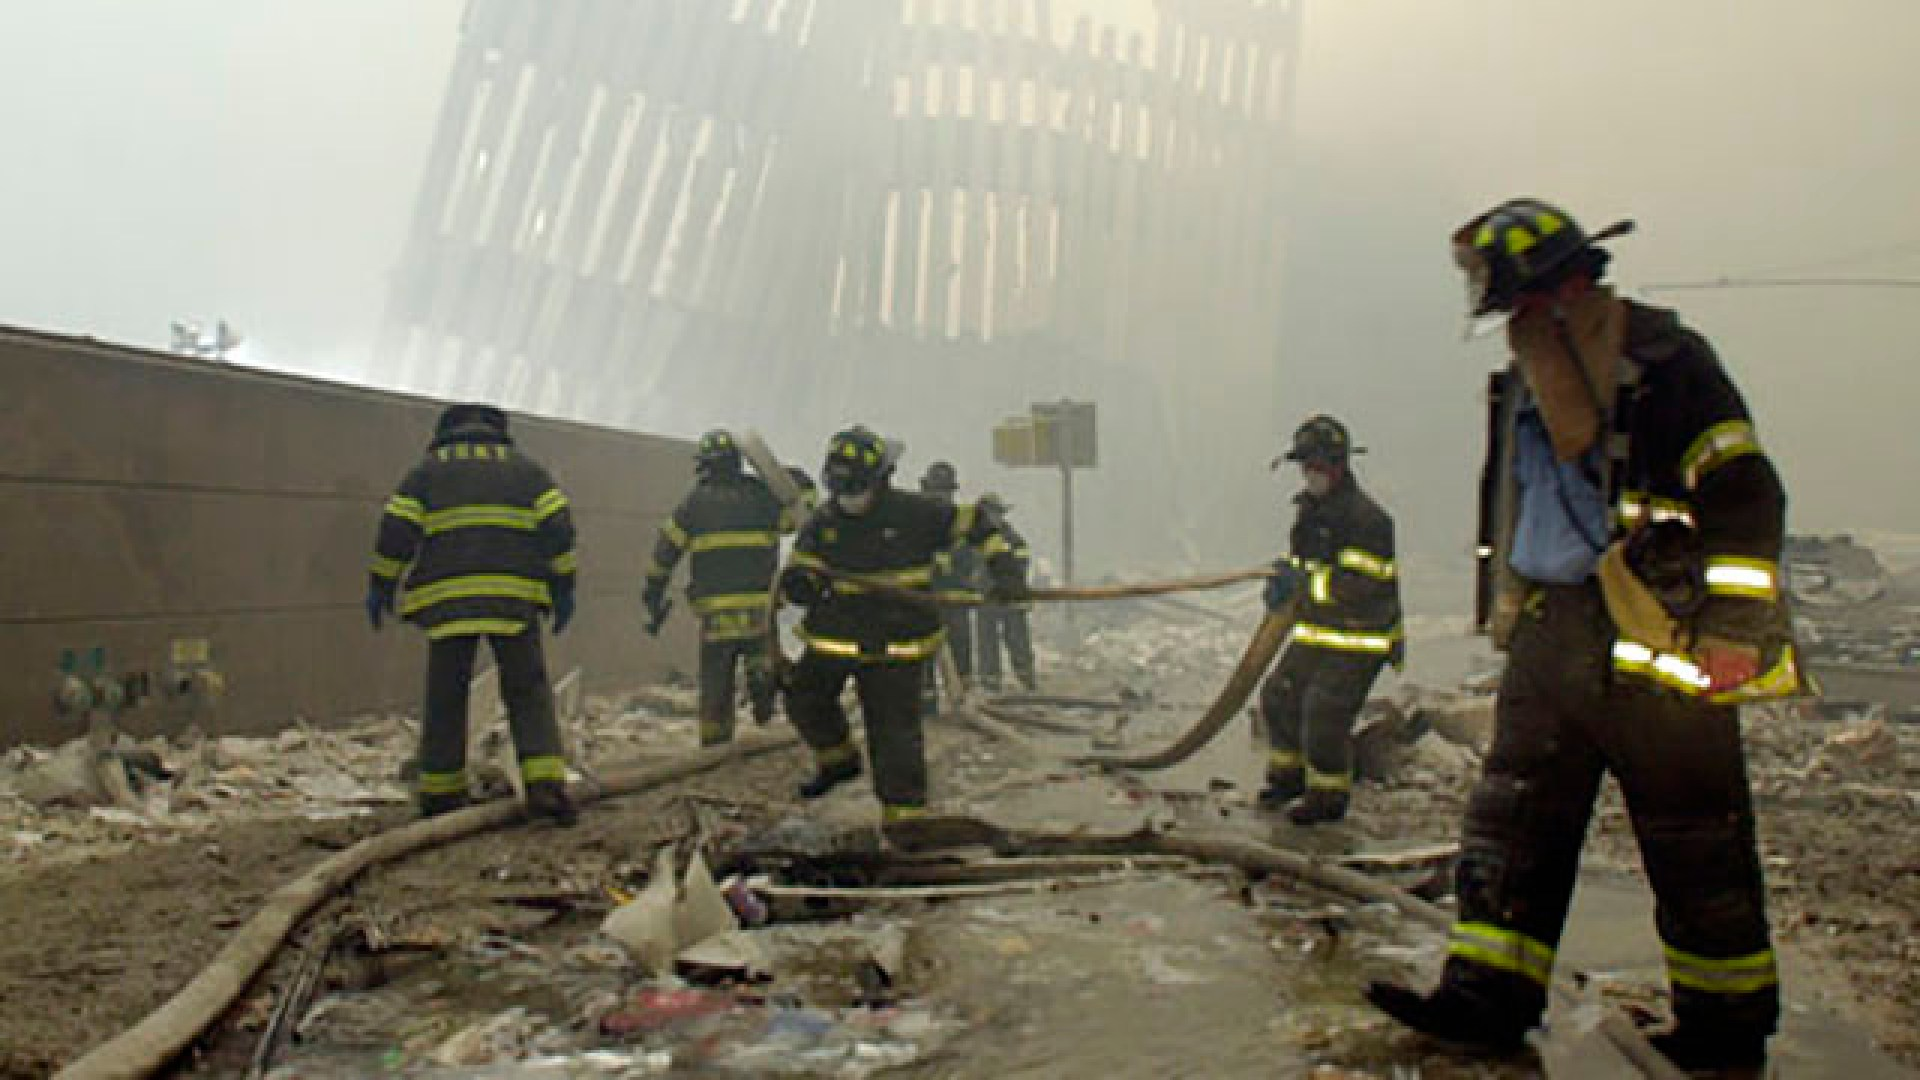 Public schools in NY State will hold moment of silence on 9/11 anniversary